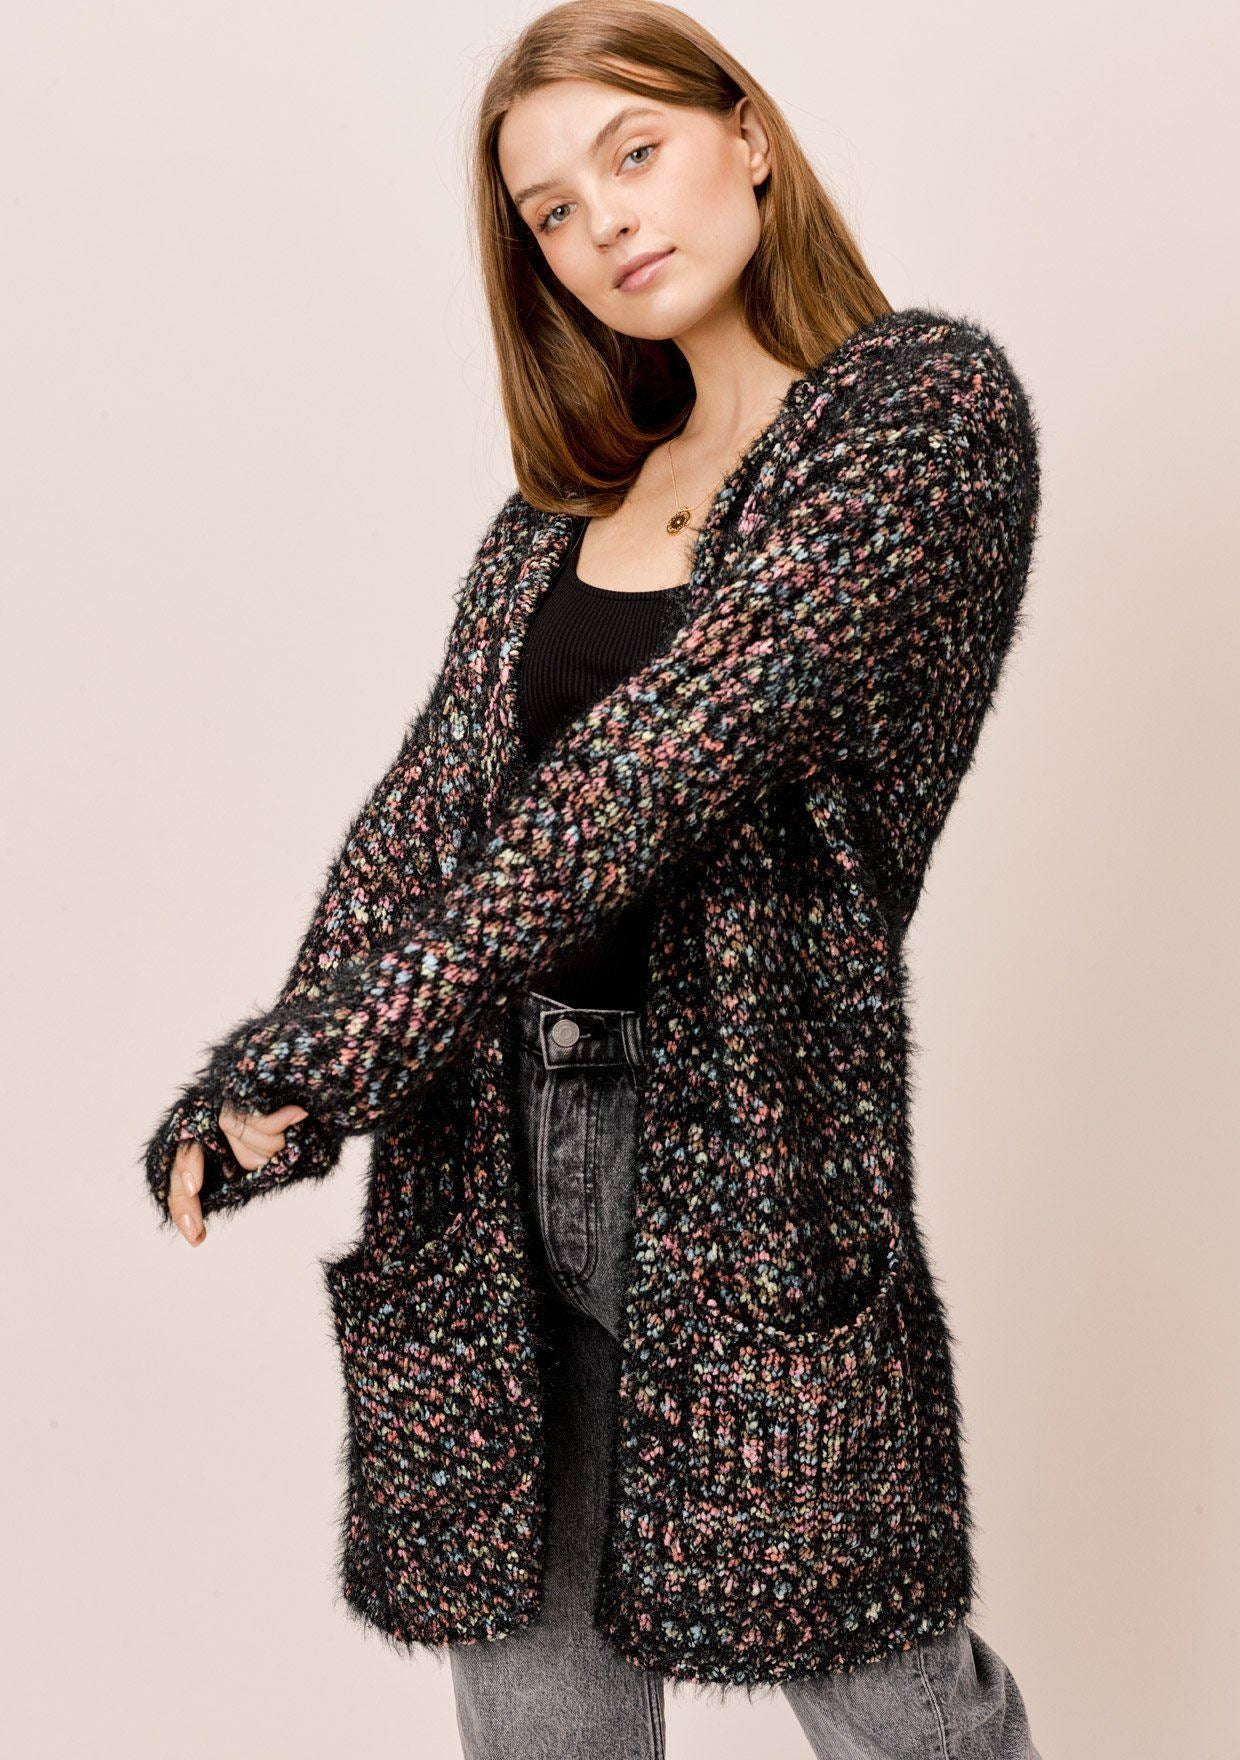 [Color: Black Multi] Lovestitch black multi soft hooded fuzzy popcorn cardigan with pockets.